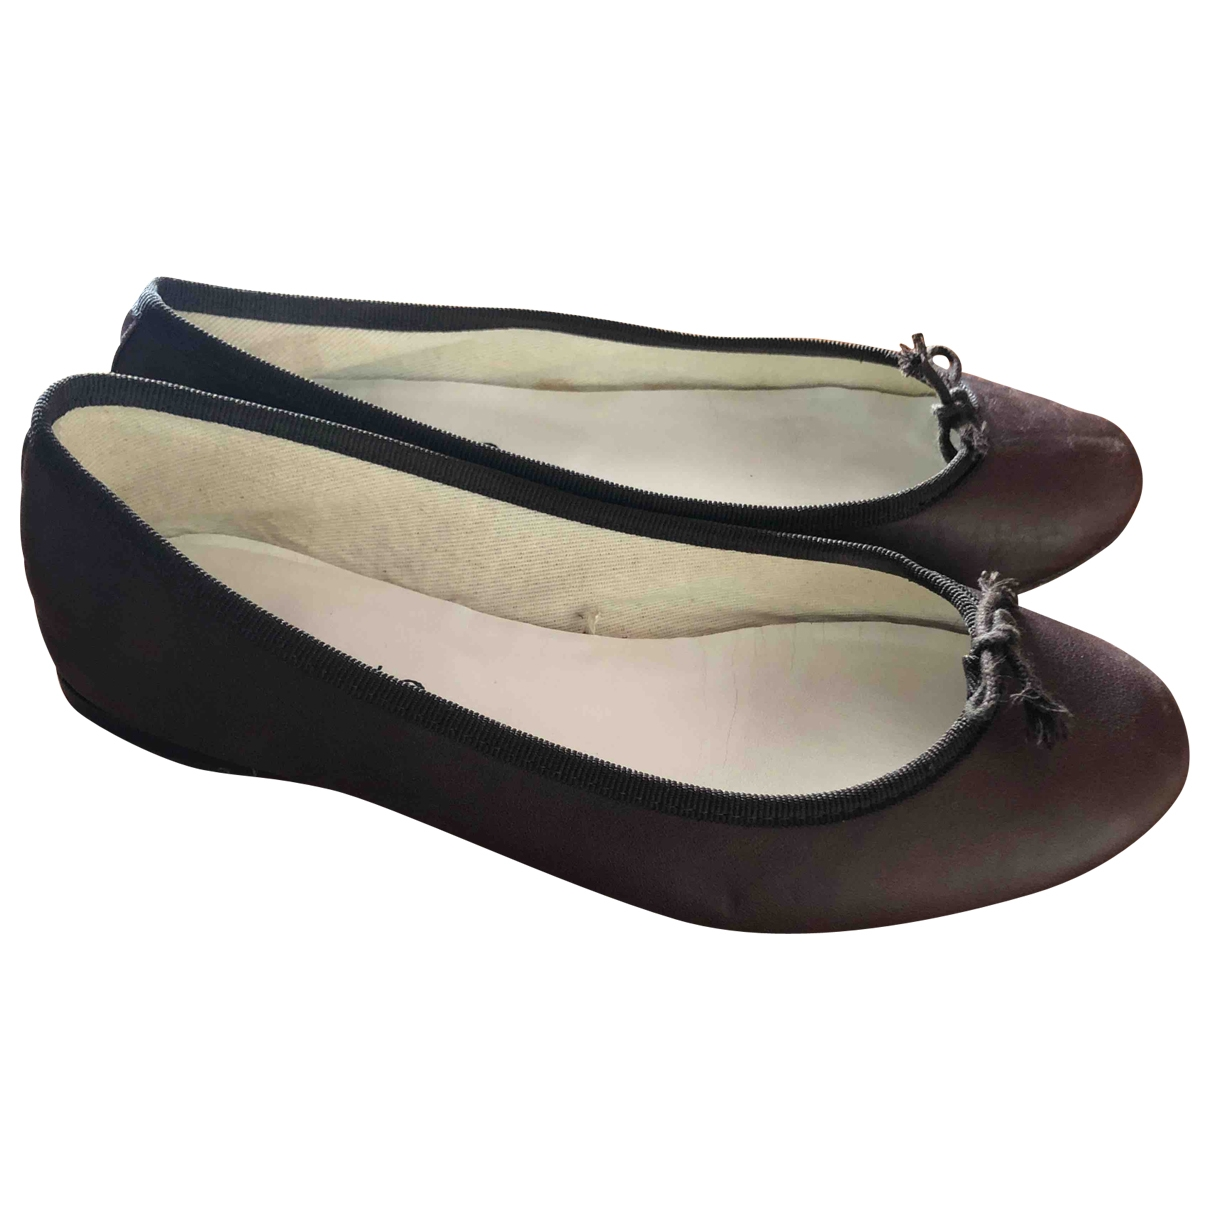 Repetto \N Brown Leather Ballet flats for Women 39 EU